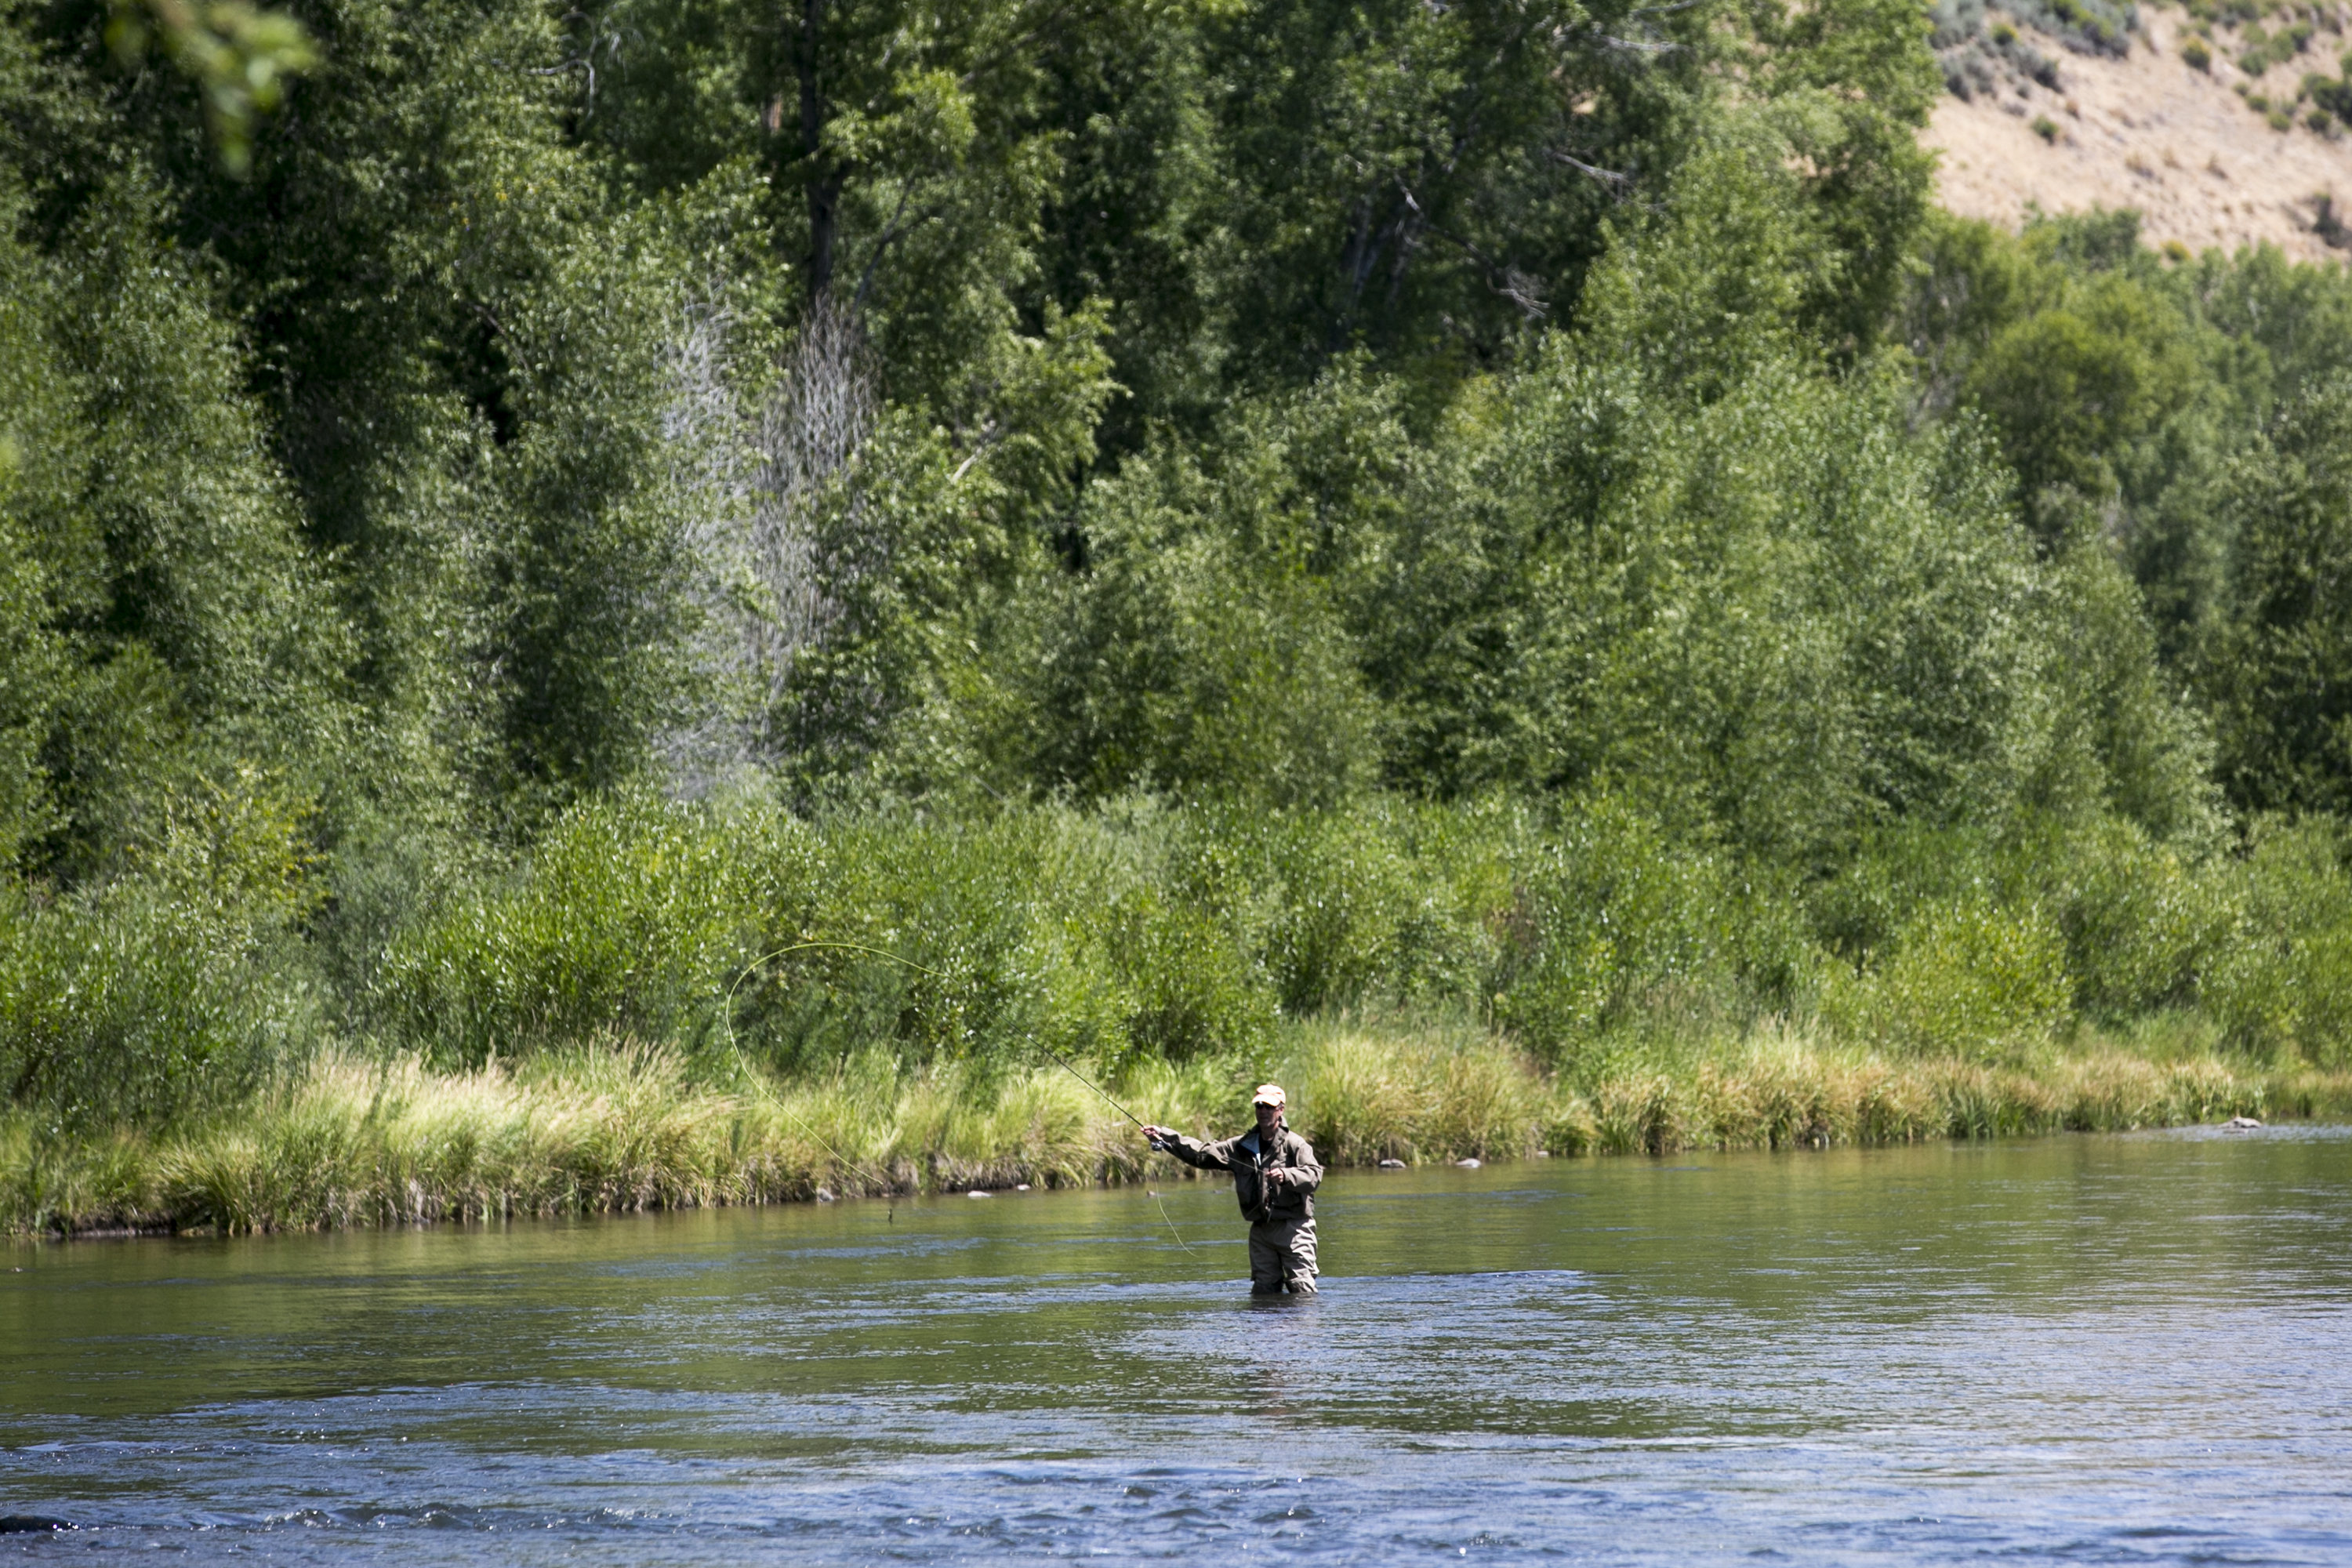 An angler on the Colorado River east of Kremmling.